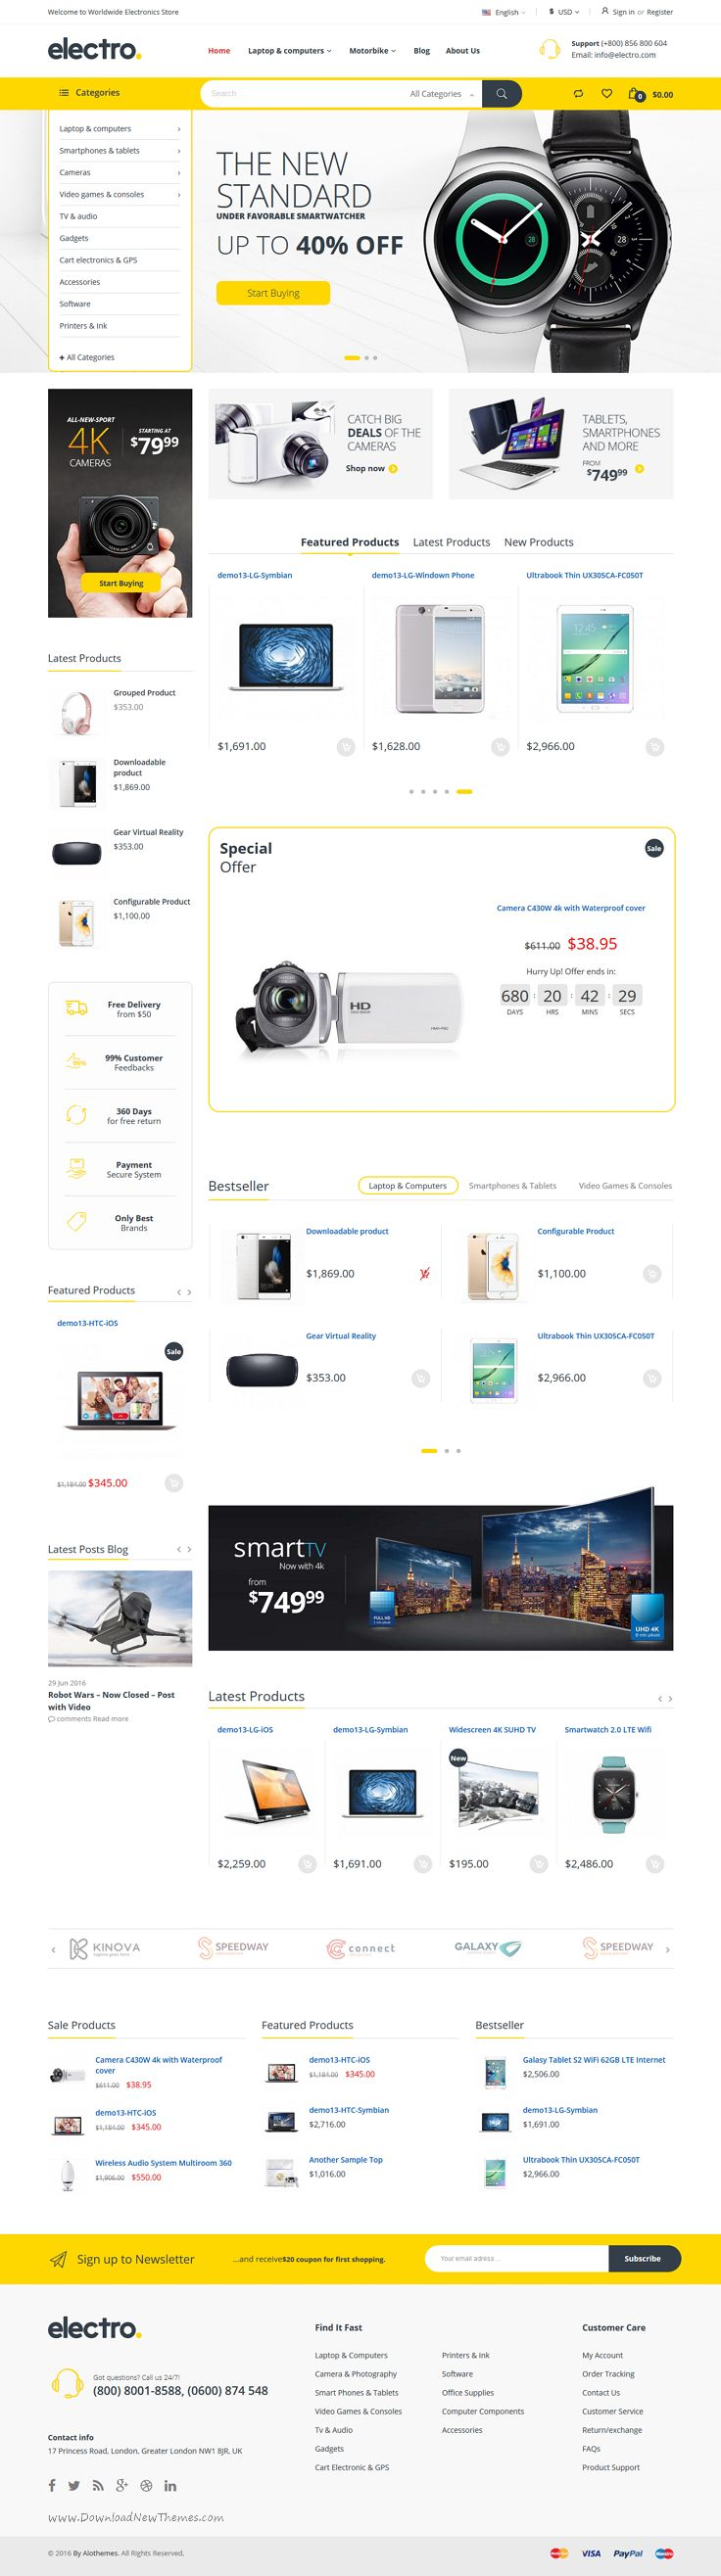 Electro is an modern and trendy #Magento 1 & 2 theme for multipurpose #tech #store eCommerce website with 3 stunning homepage layouts download now➯ https://themeforest.net/item/electro-responsive-magento-1-2-theme/17042067?ref=Datasata